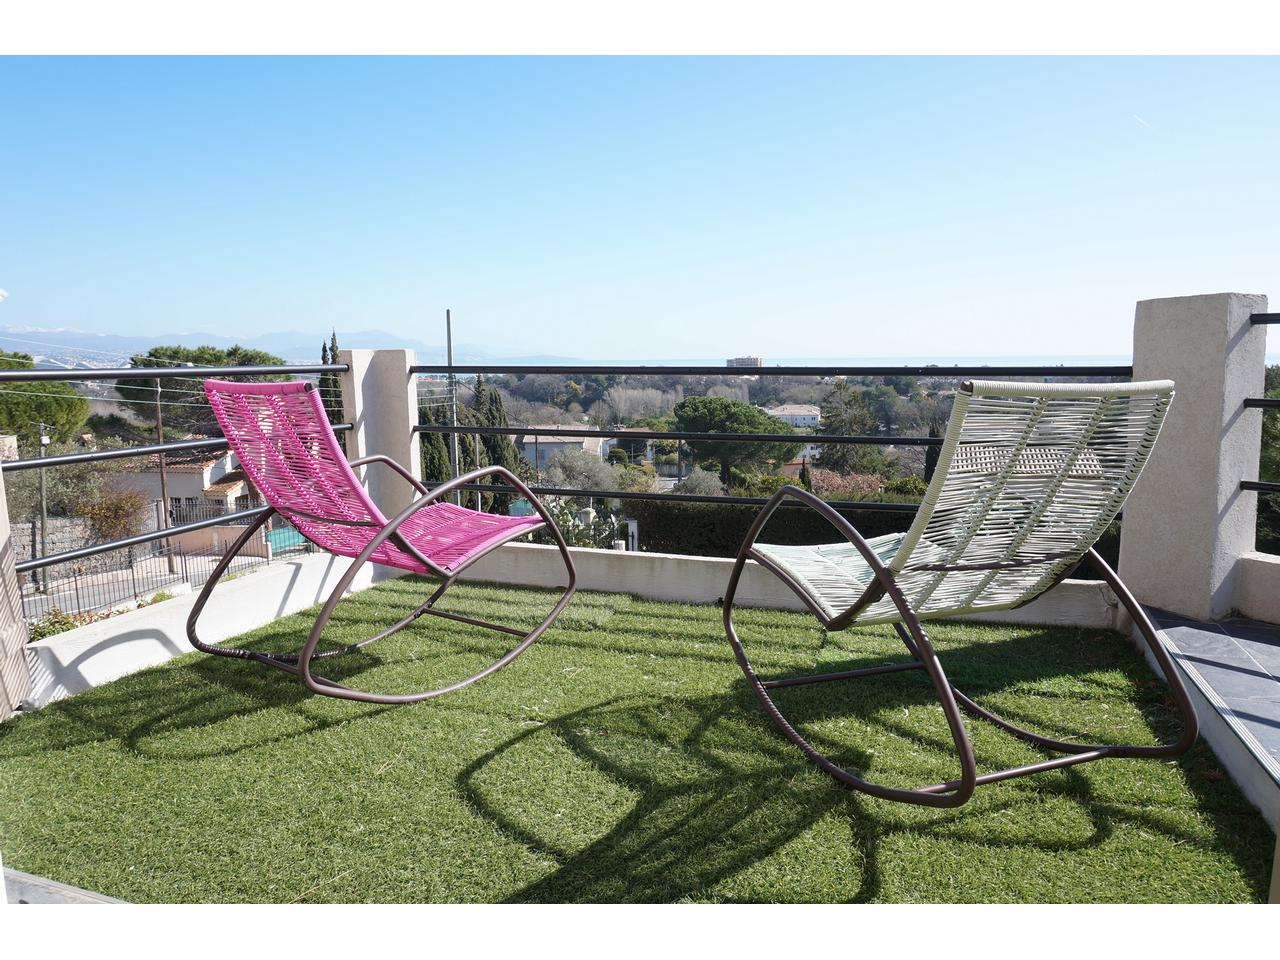 Vente appartement antibes immobilier nice vue mer for Immobilier atypique nice